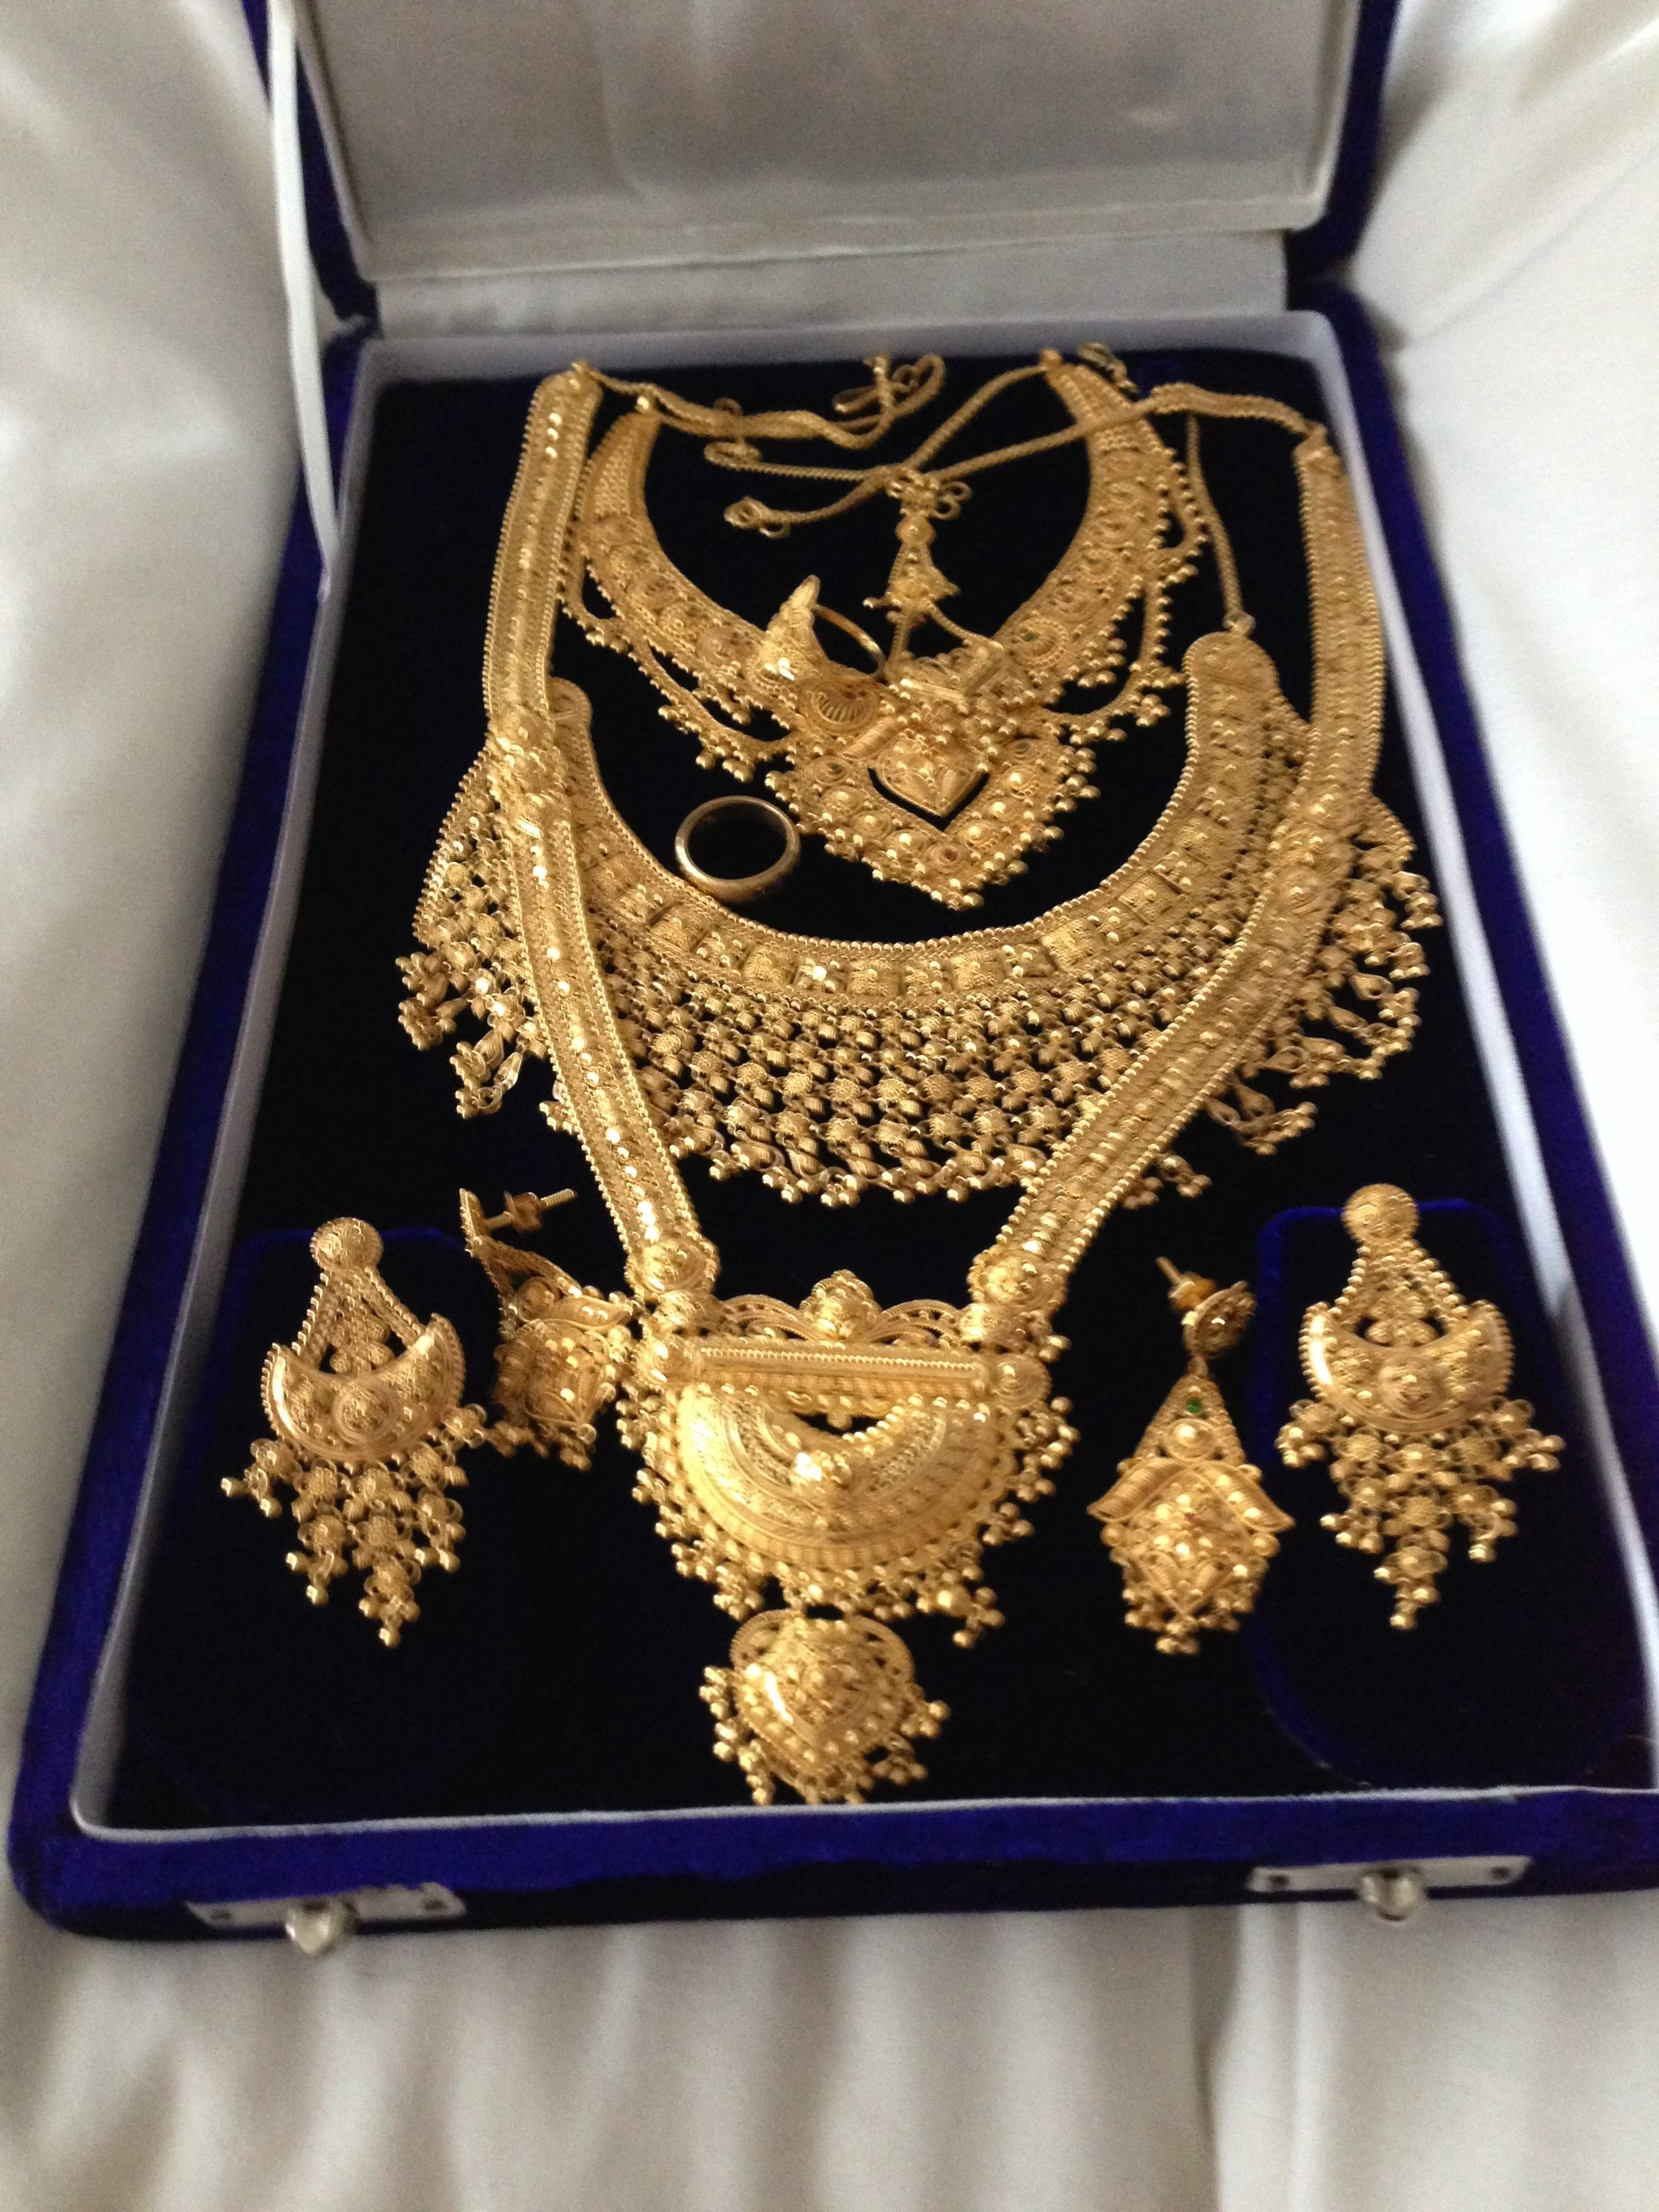 Jewellery stolen in Rickmansworth